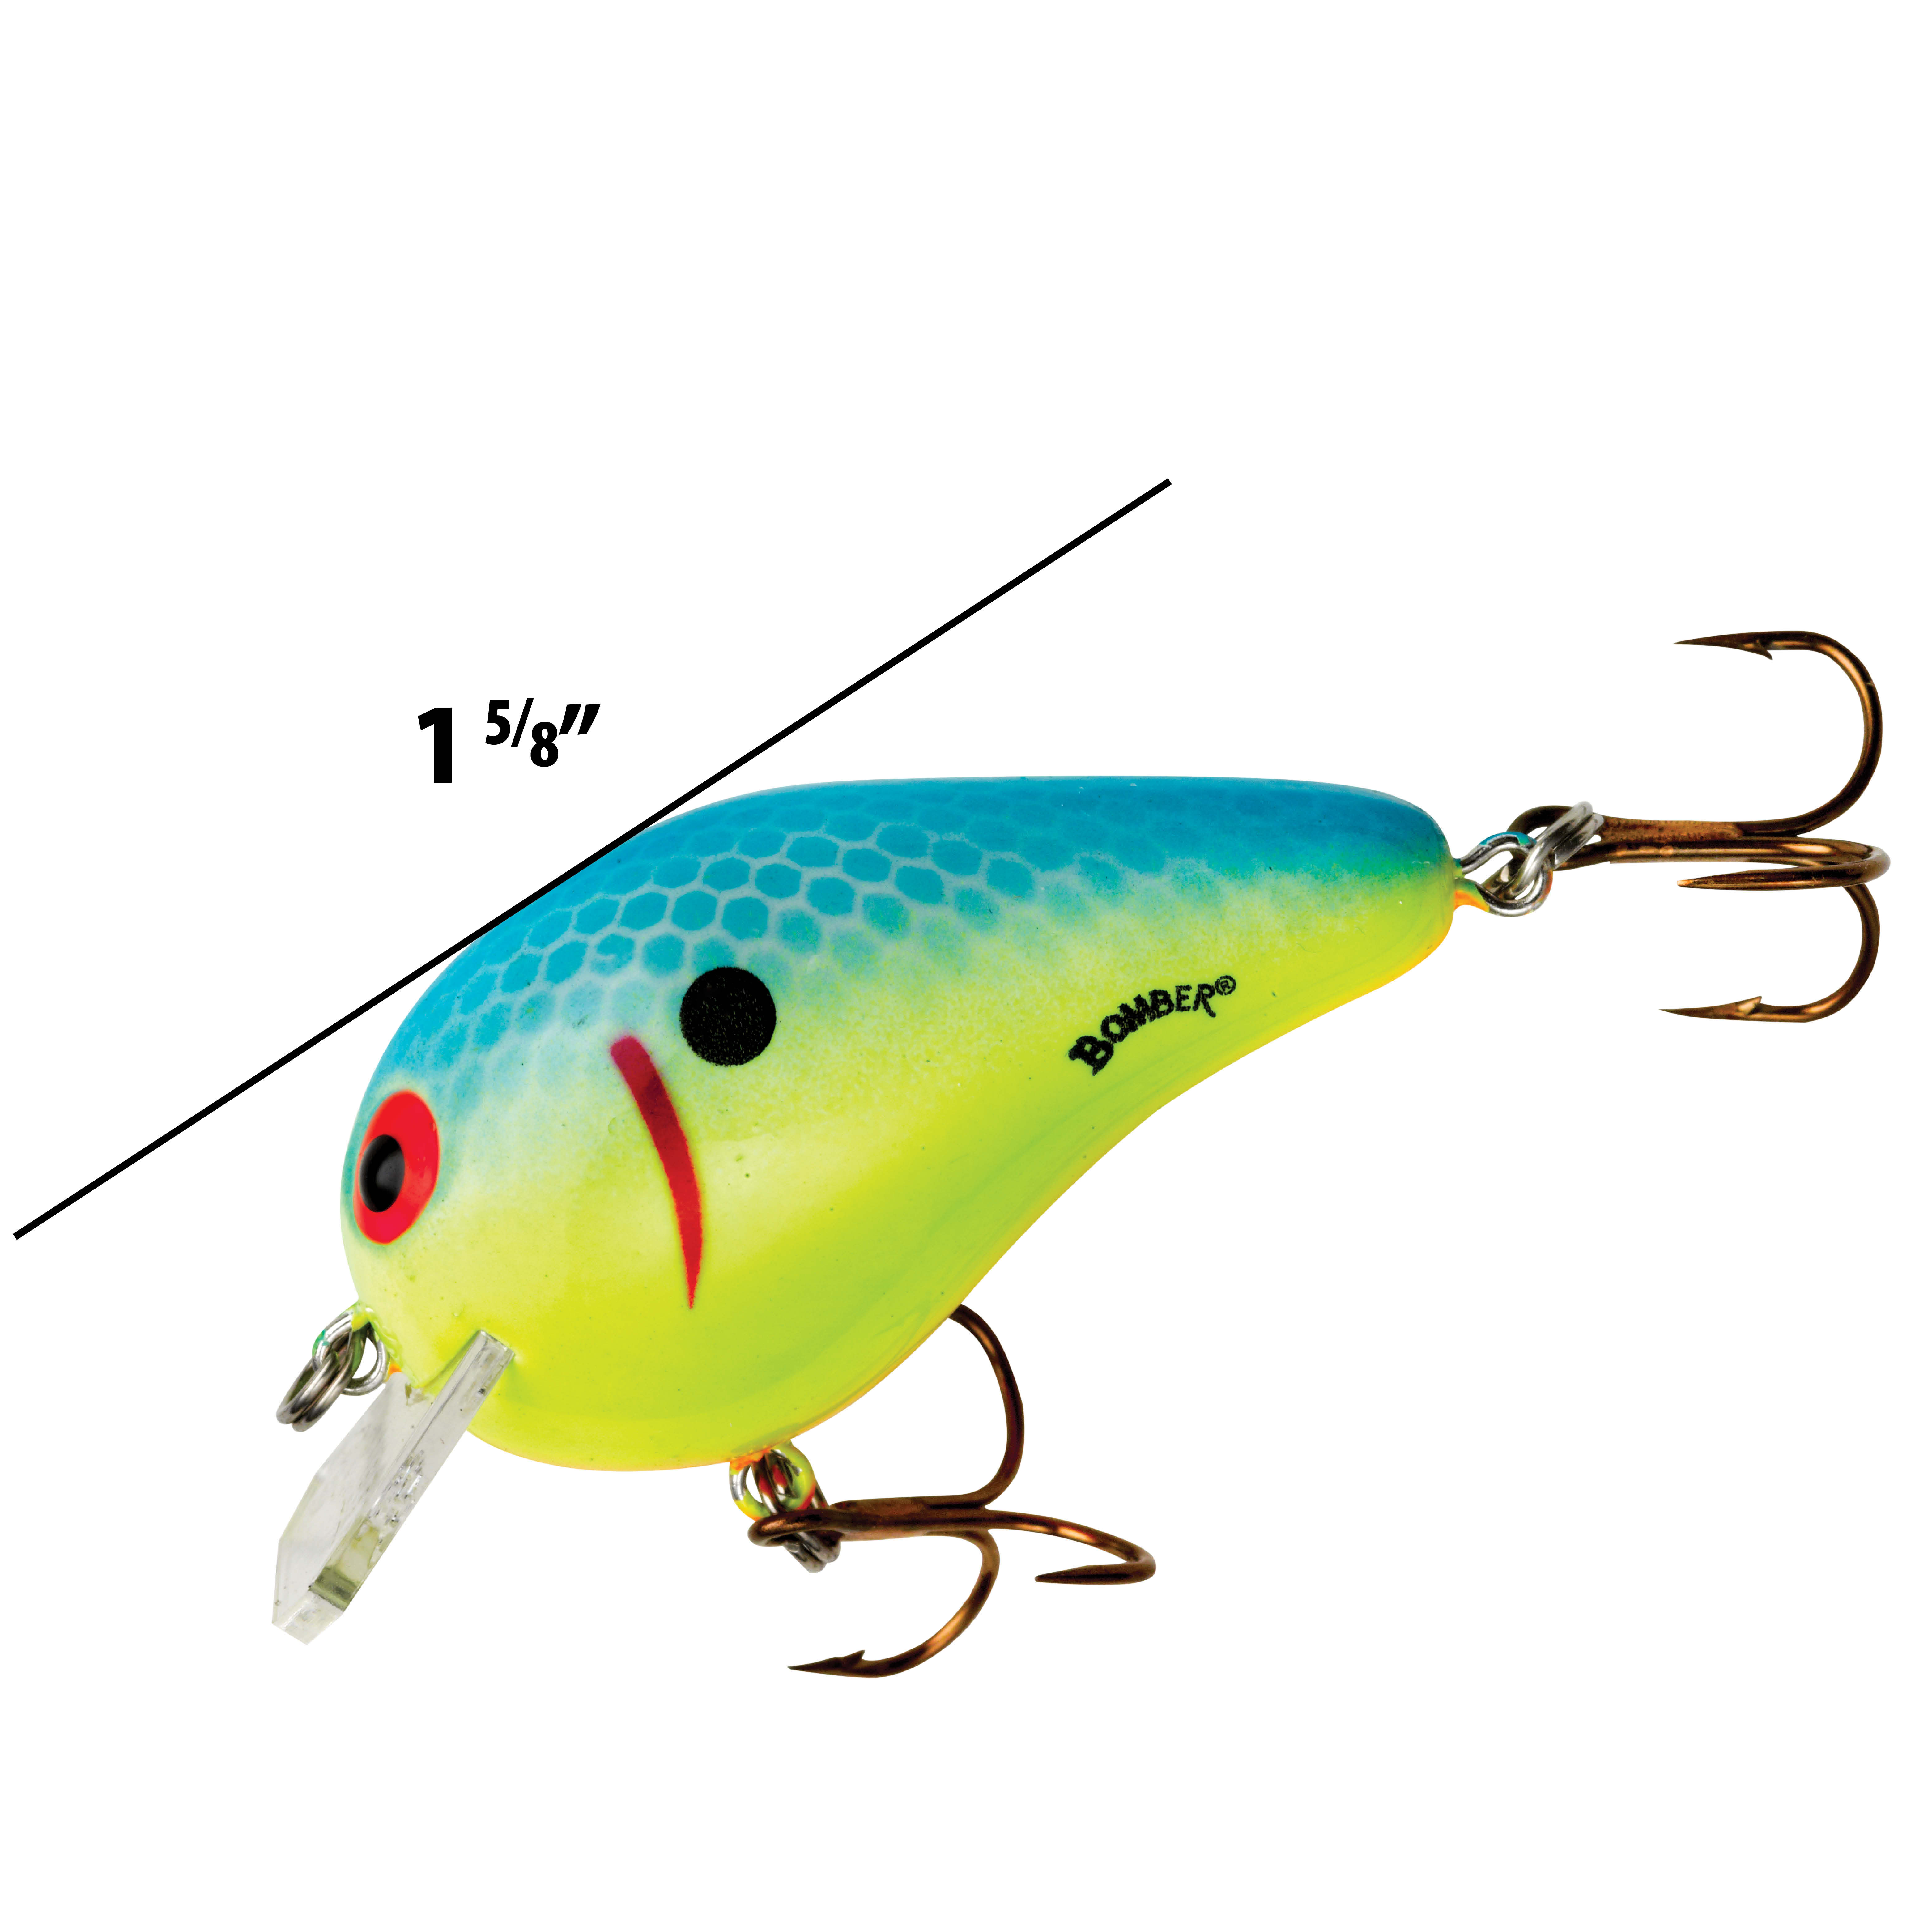 Details about  /BOMBER SWIMBAIT PLUS FREE GIFT